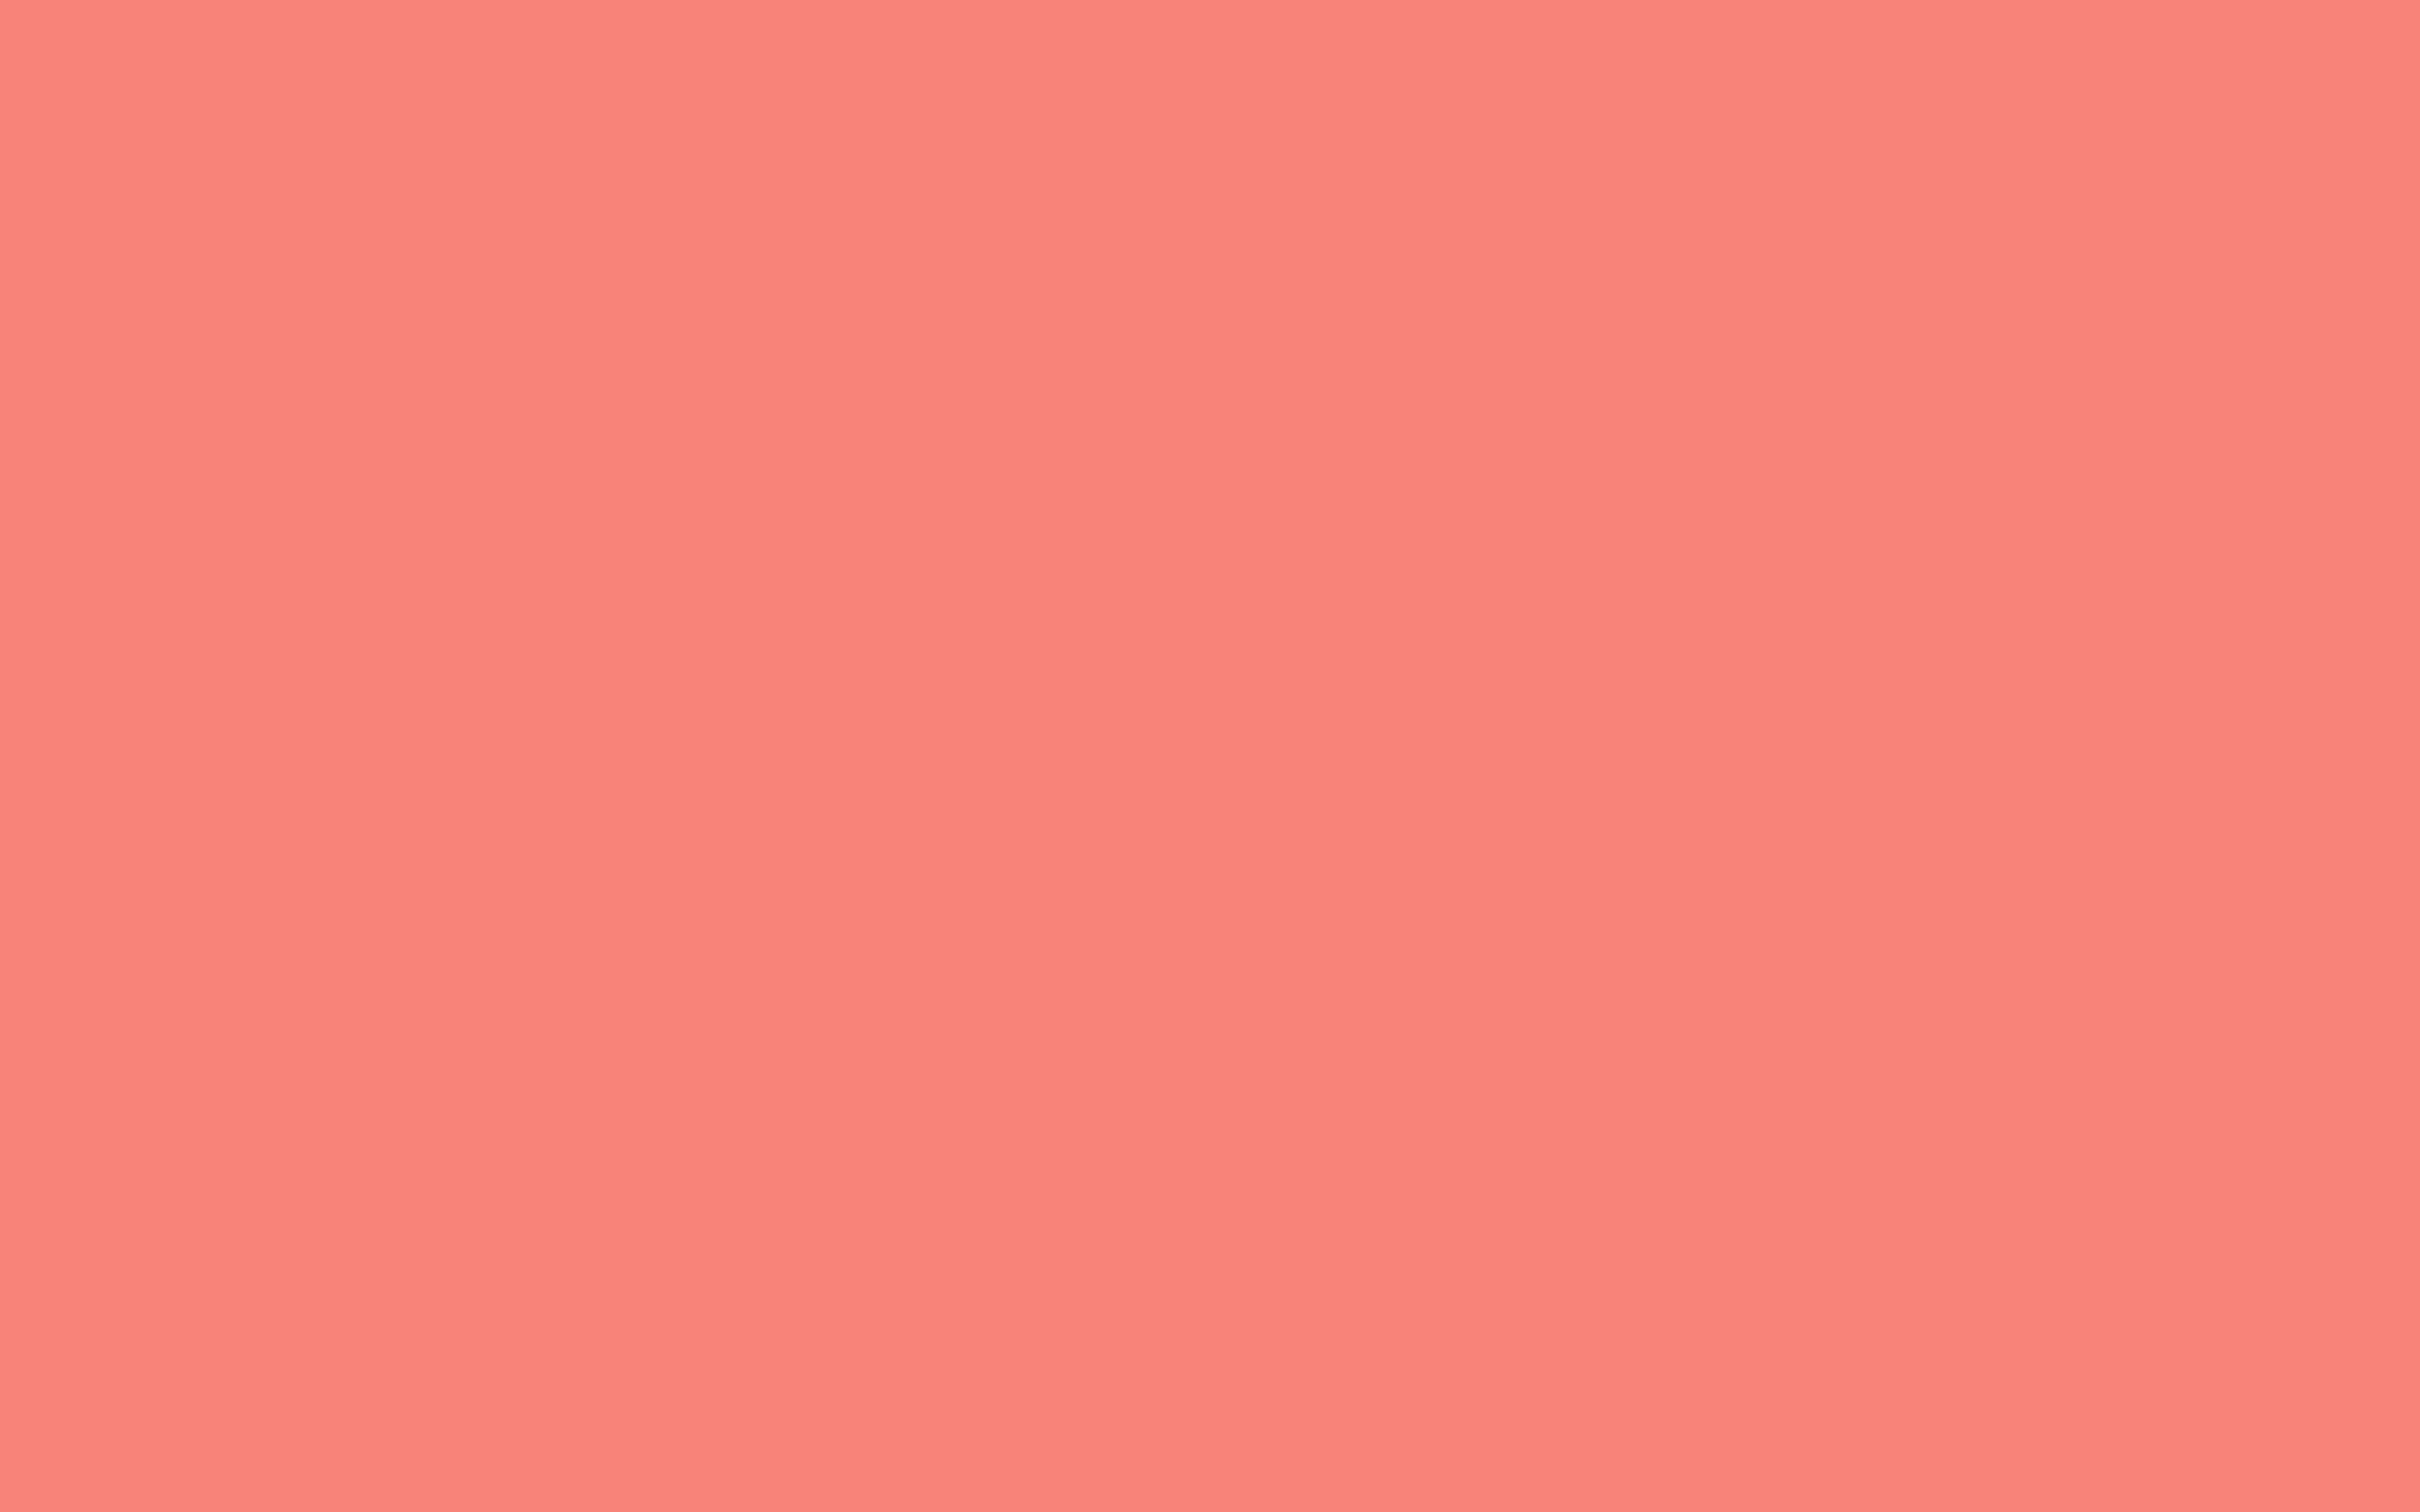 2560x1600 Congo Pink Solid Color Background